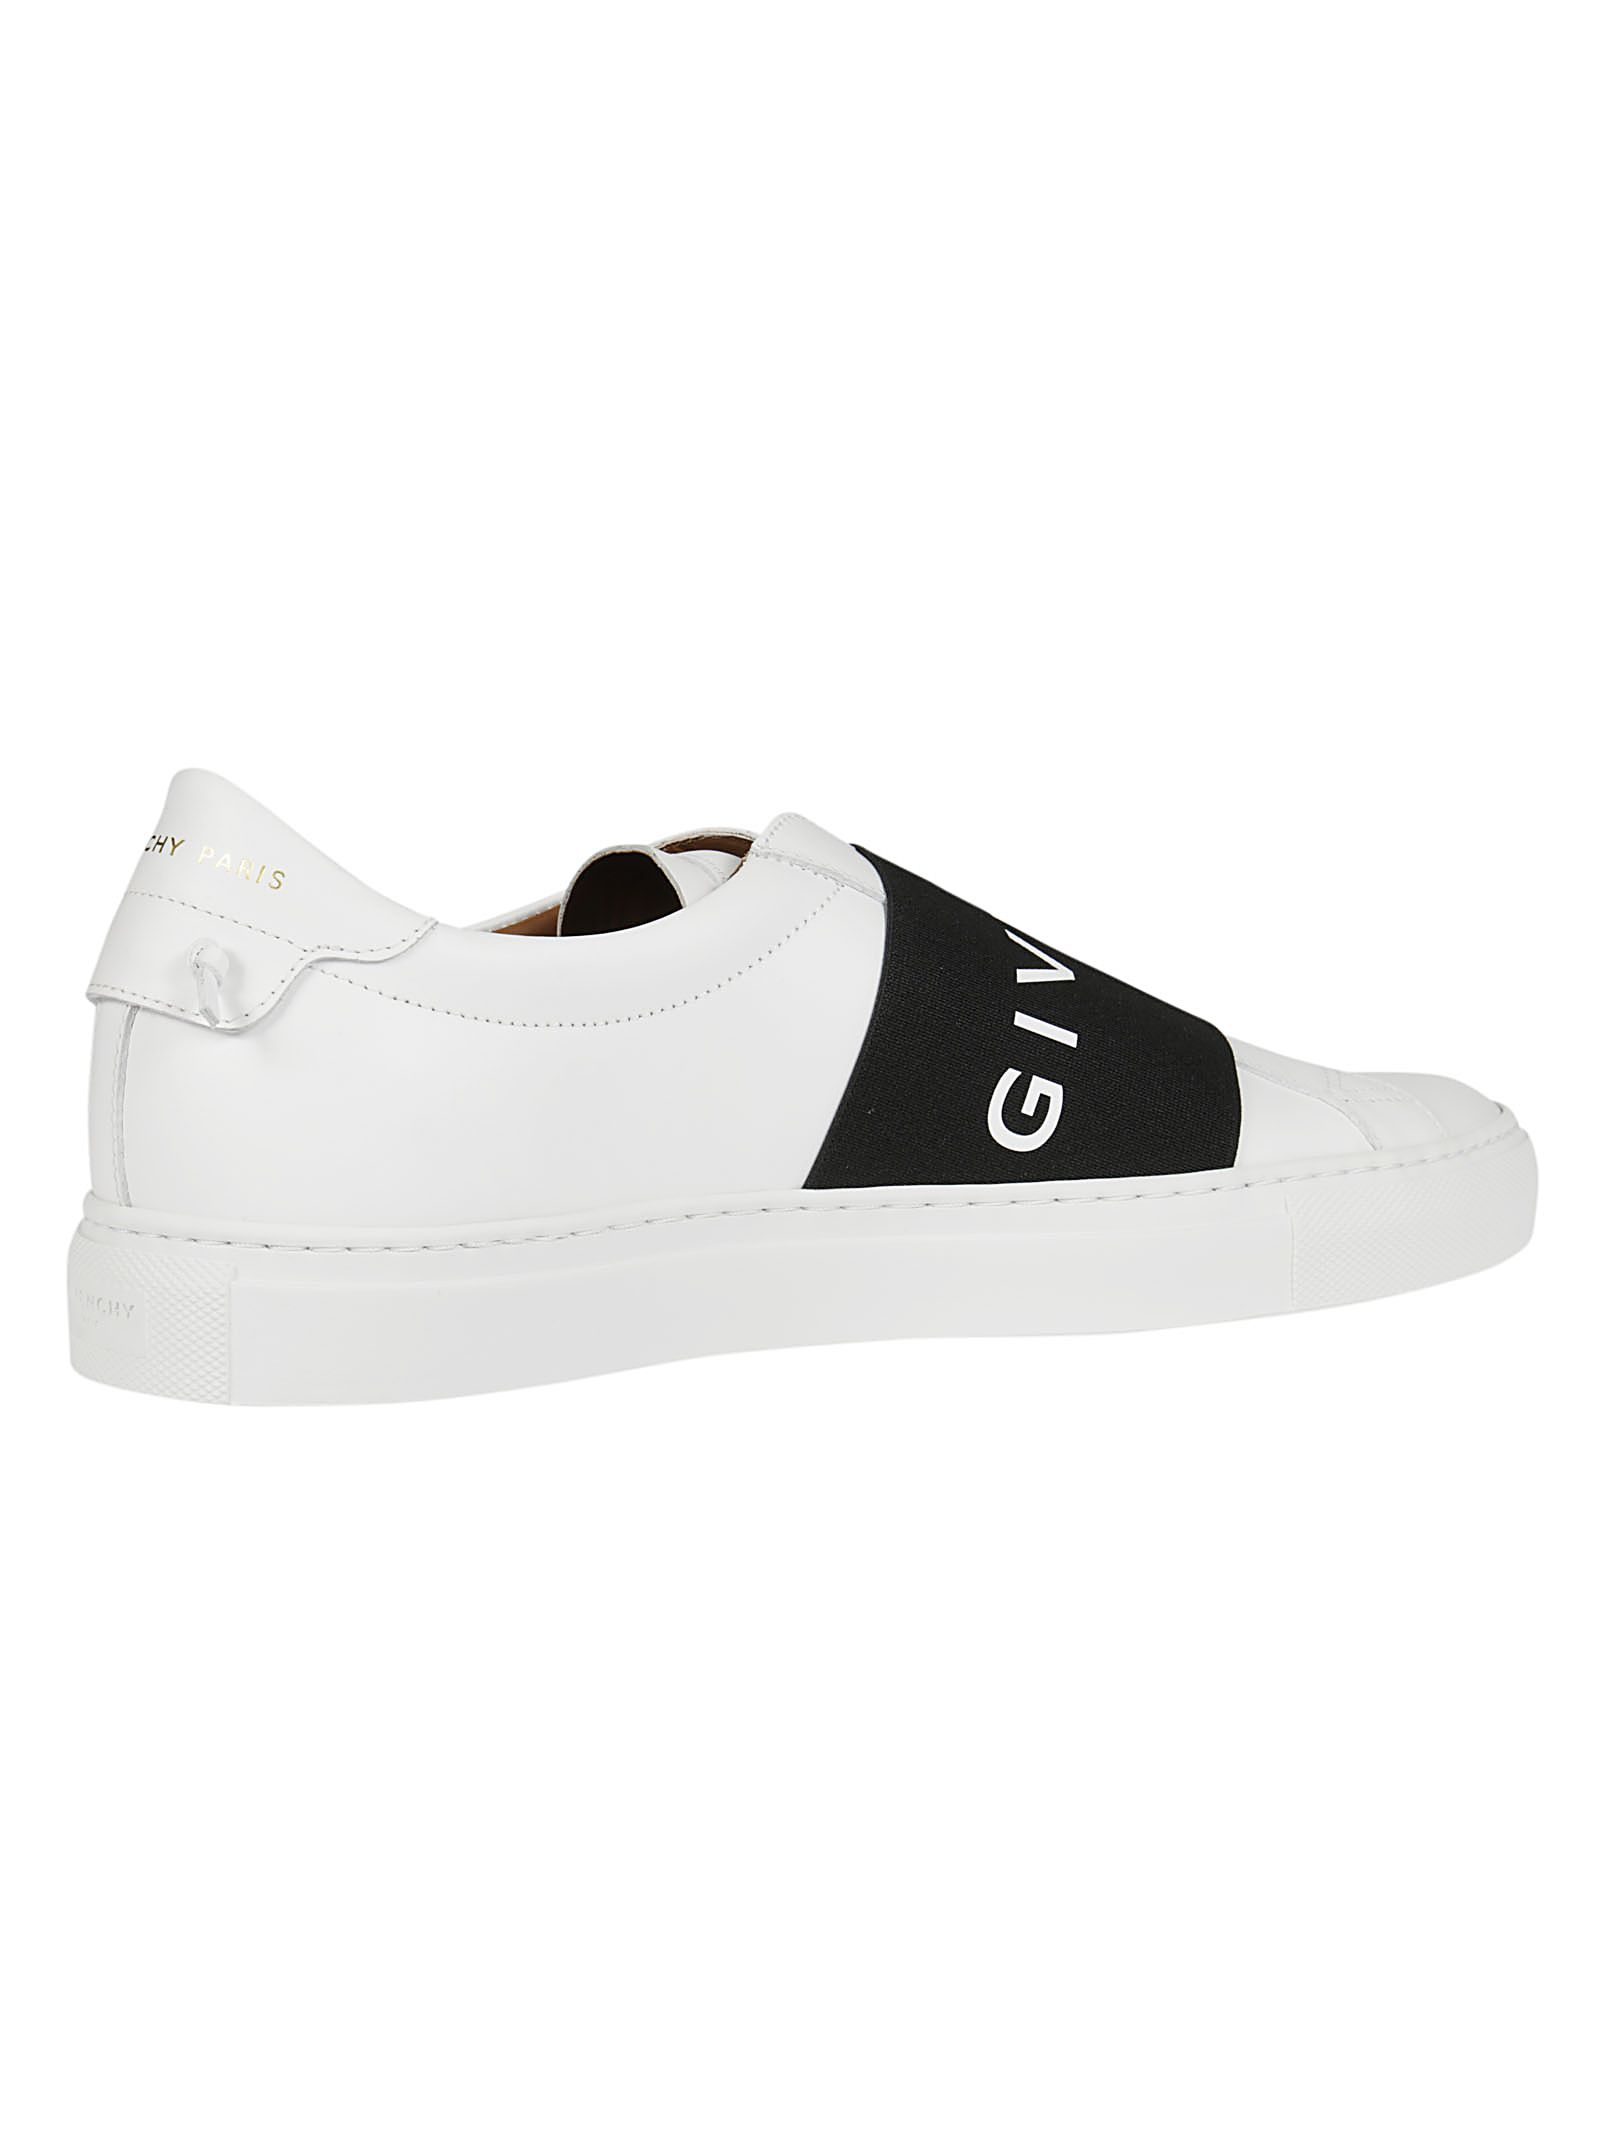 Givenchy Logo Strap Slip-on Sneakers